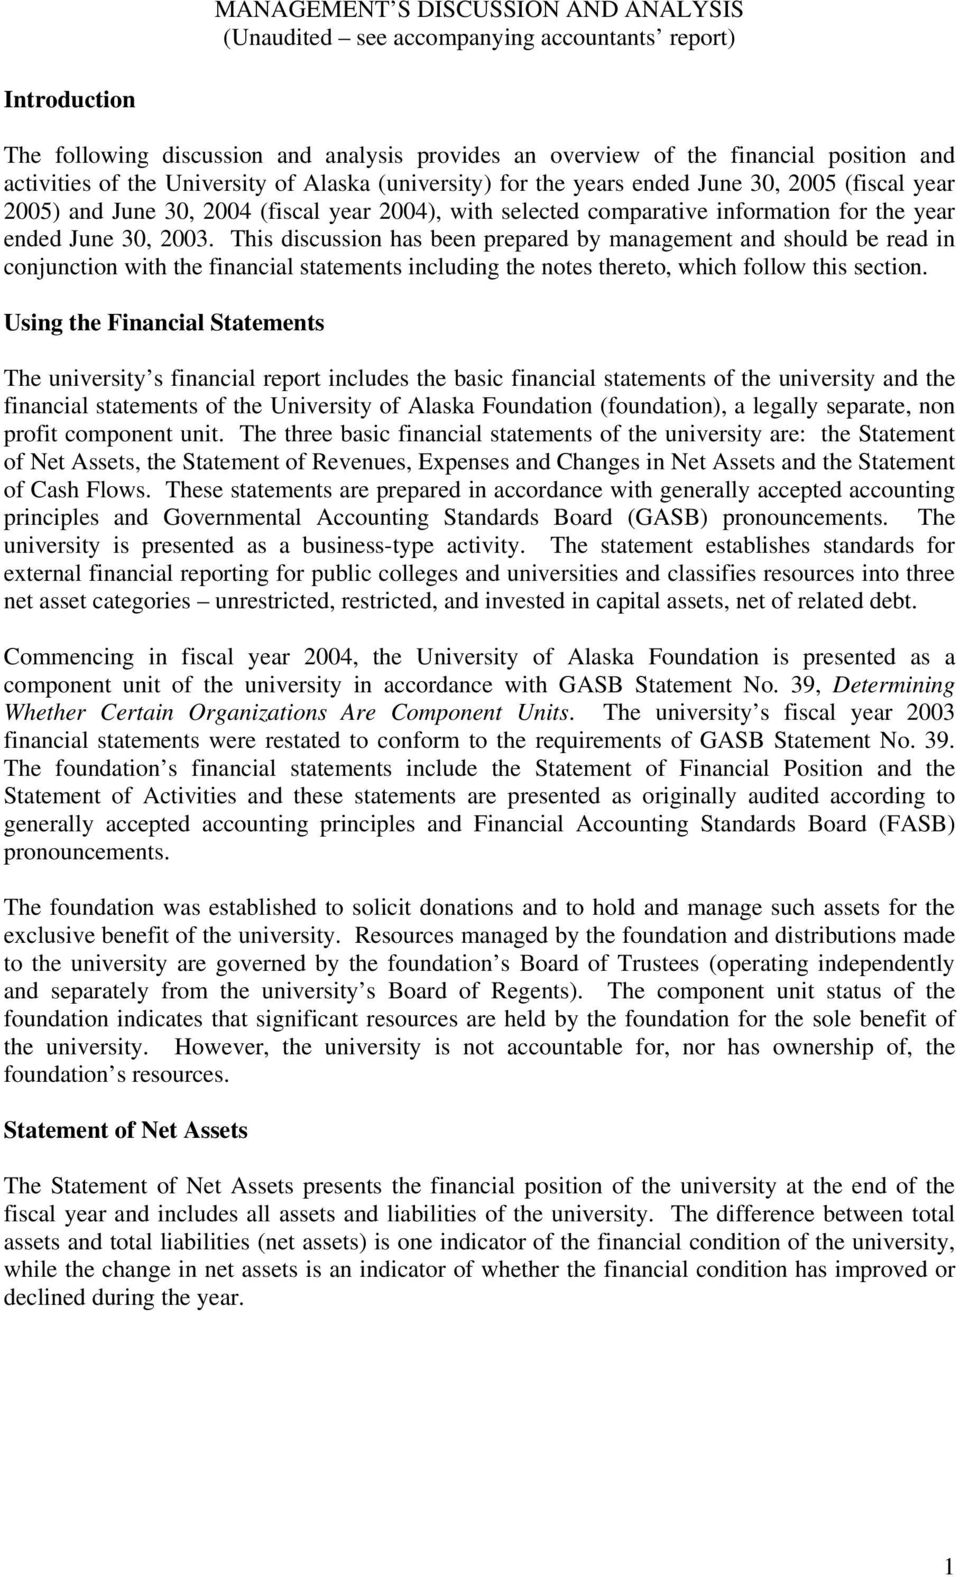 2003. This discussion has been prepared by management and should be read in conjunction with the financial statements including the notes thereto, which follow this section.